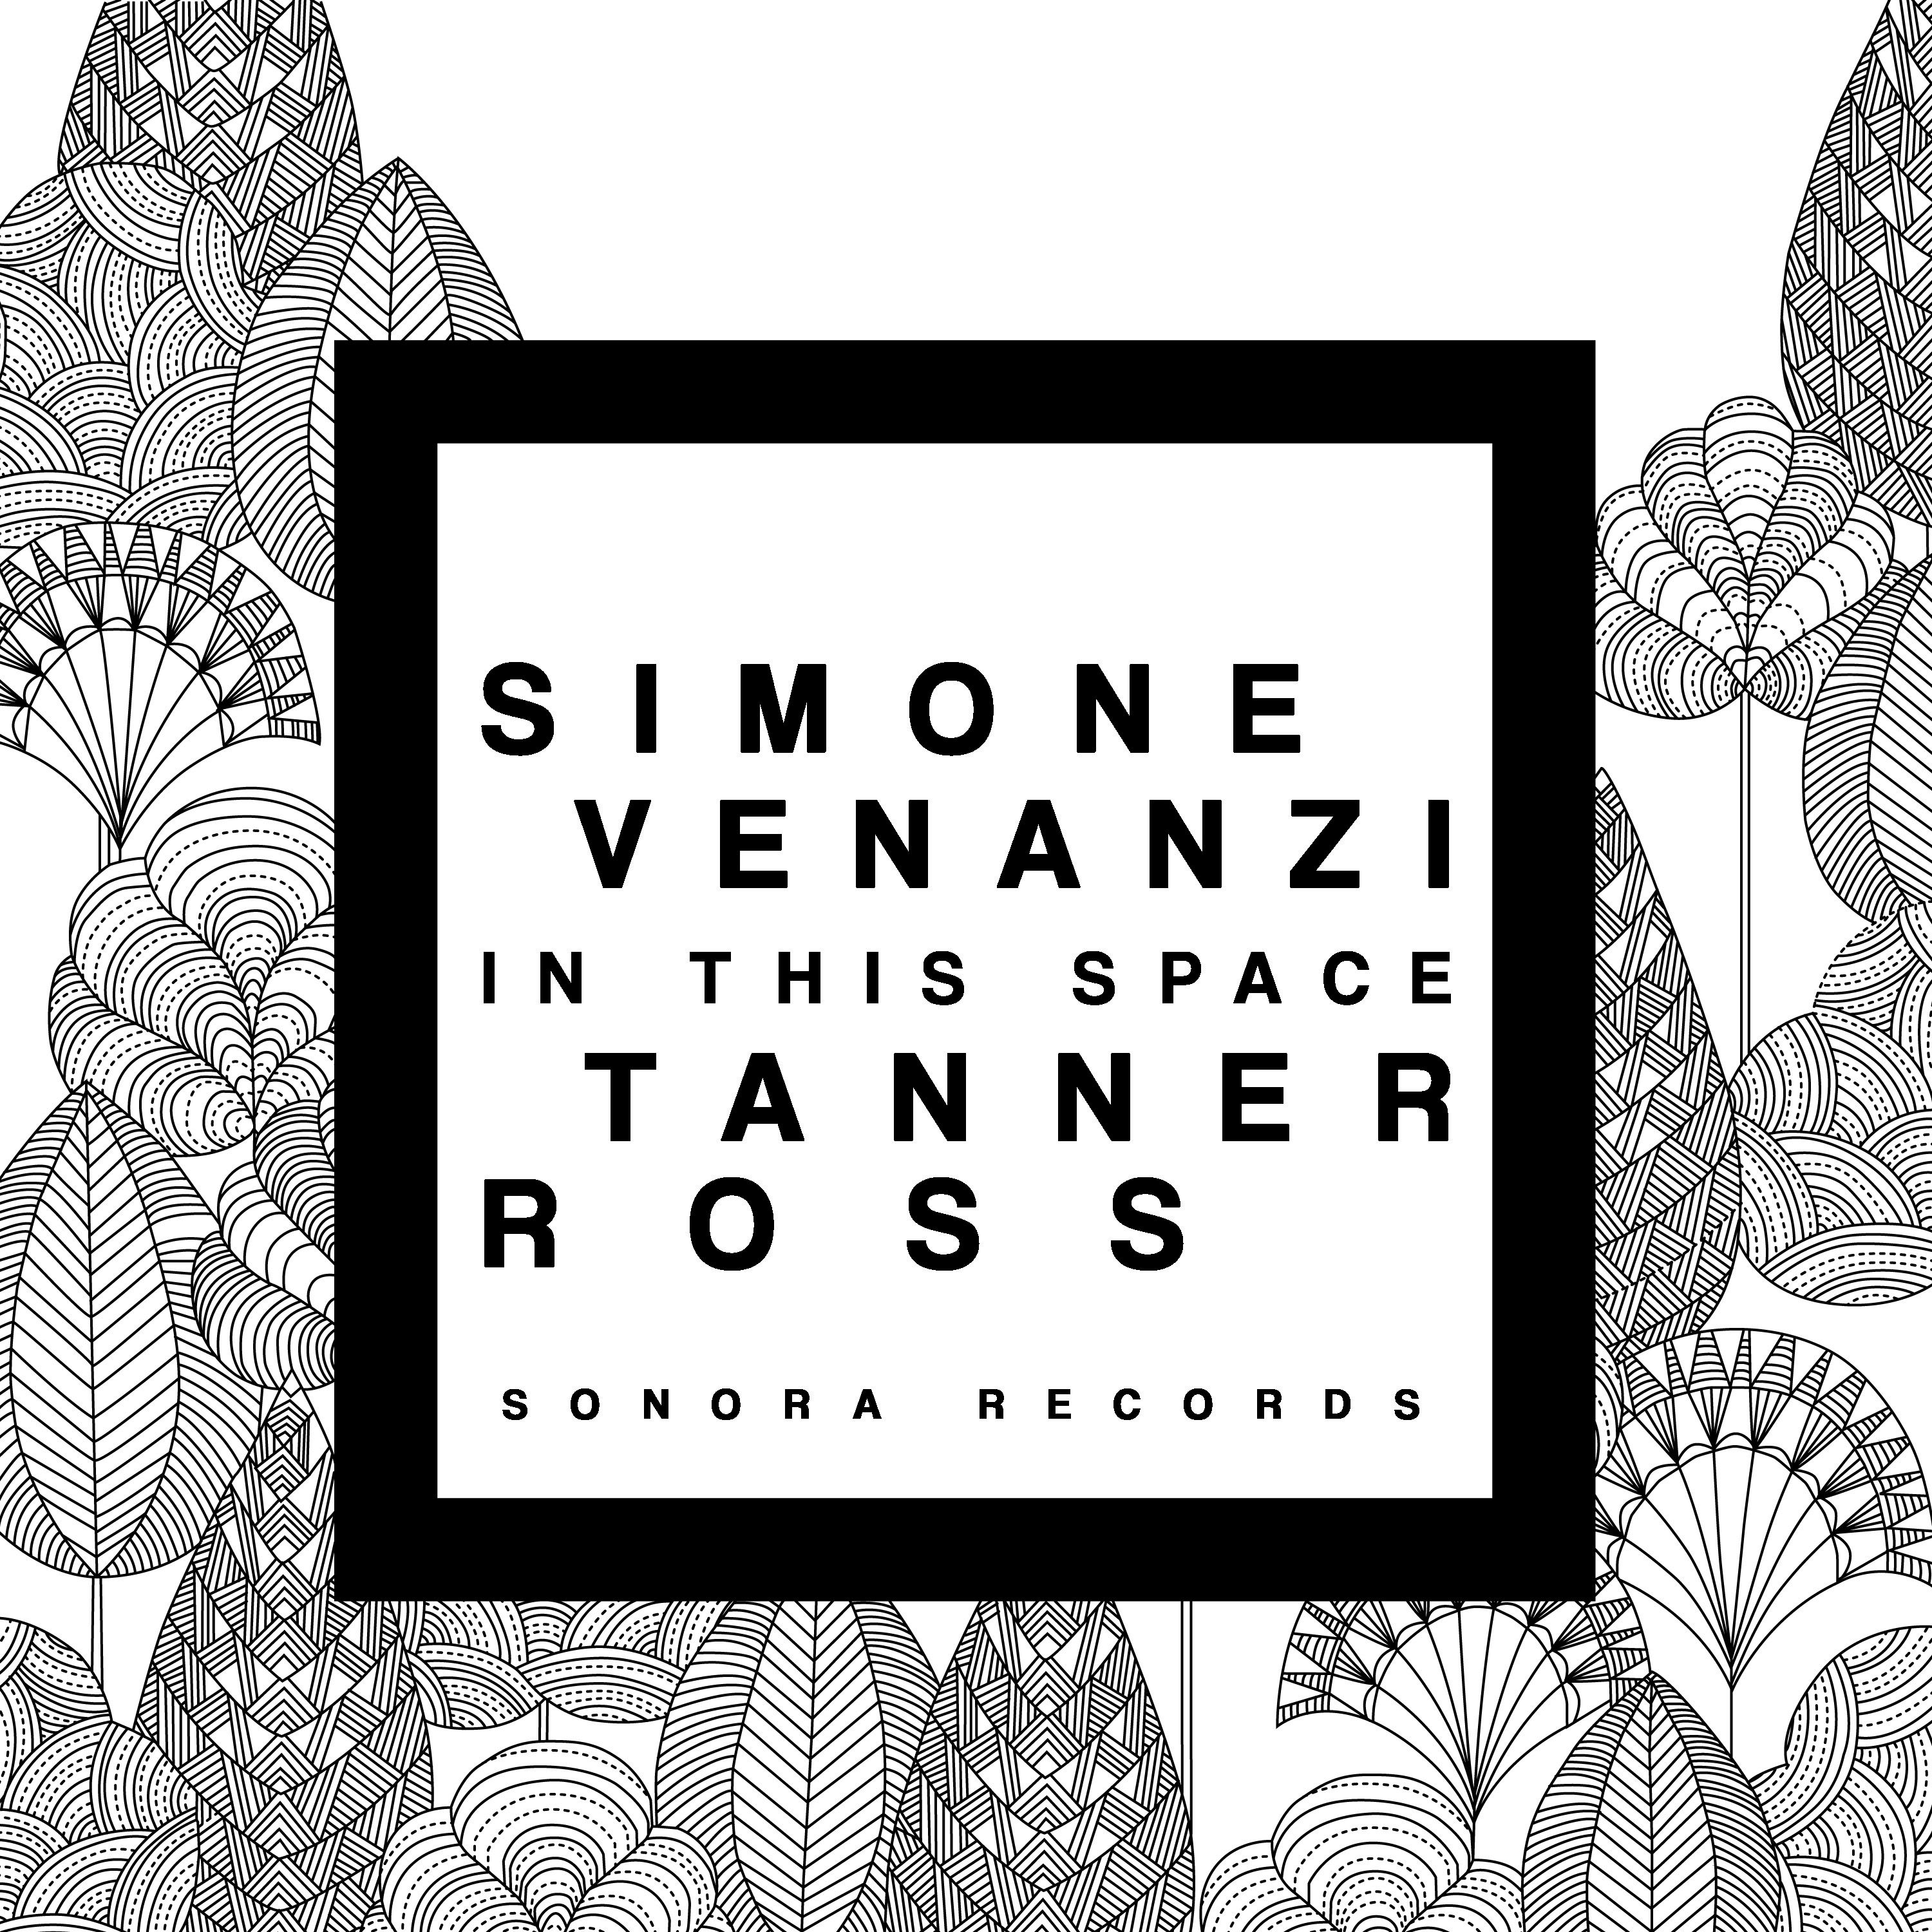 Simone Venanzi - In This Space (Original mix)